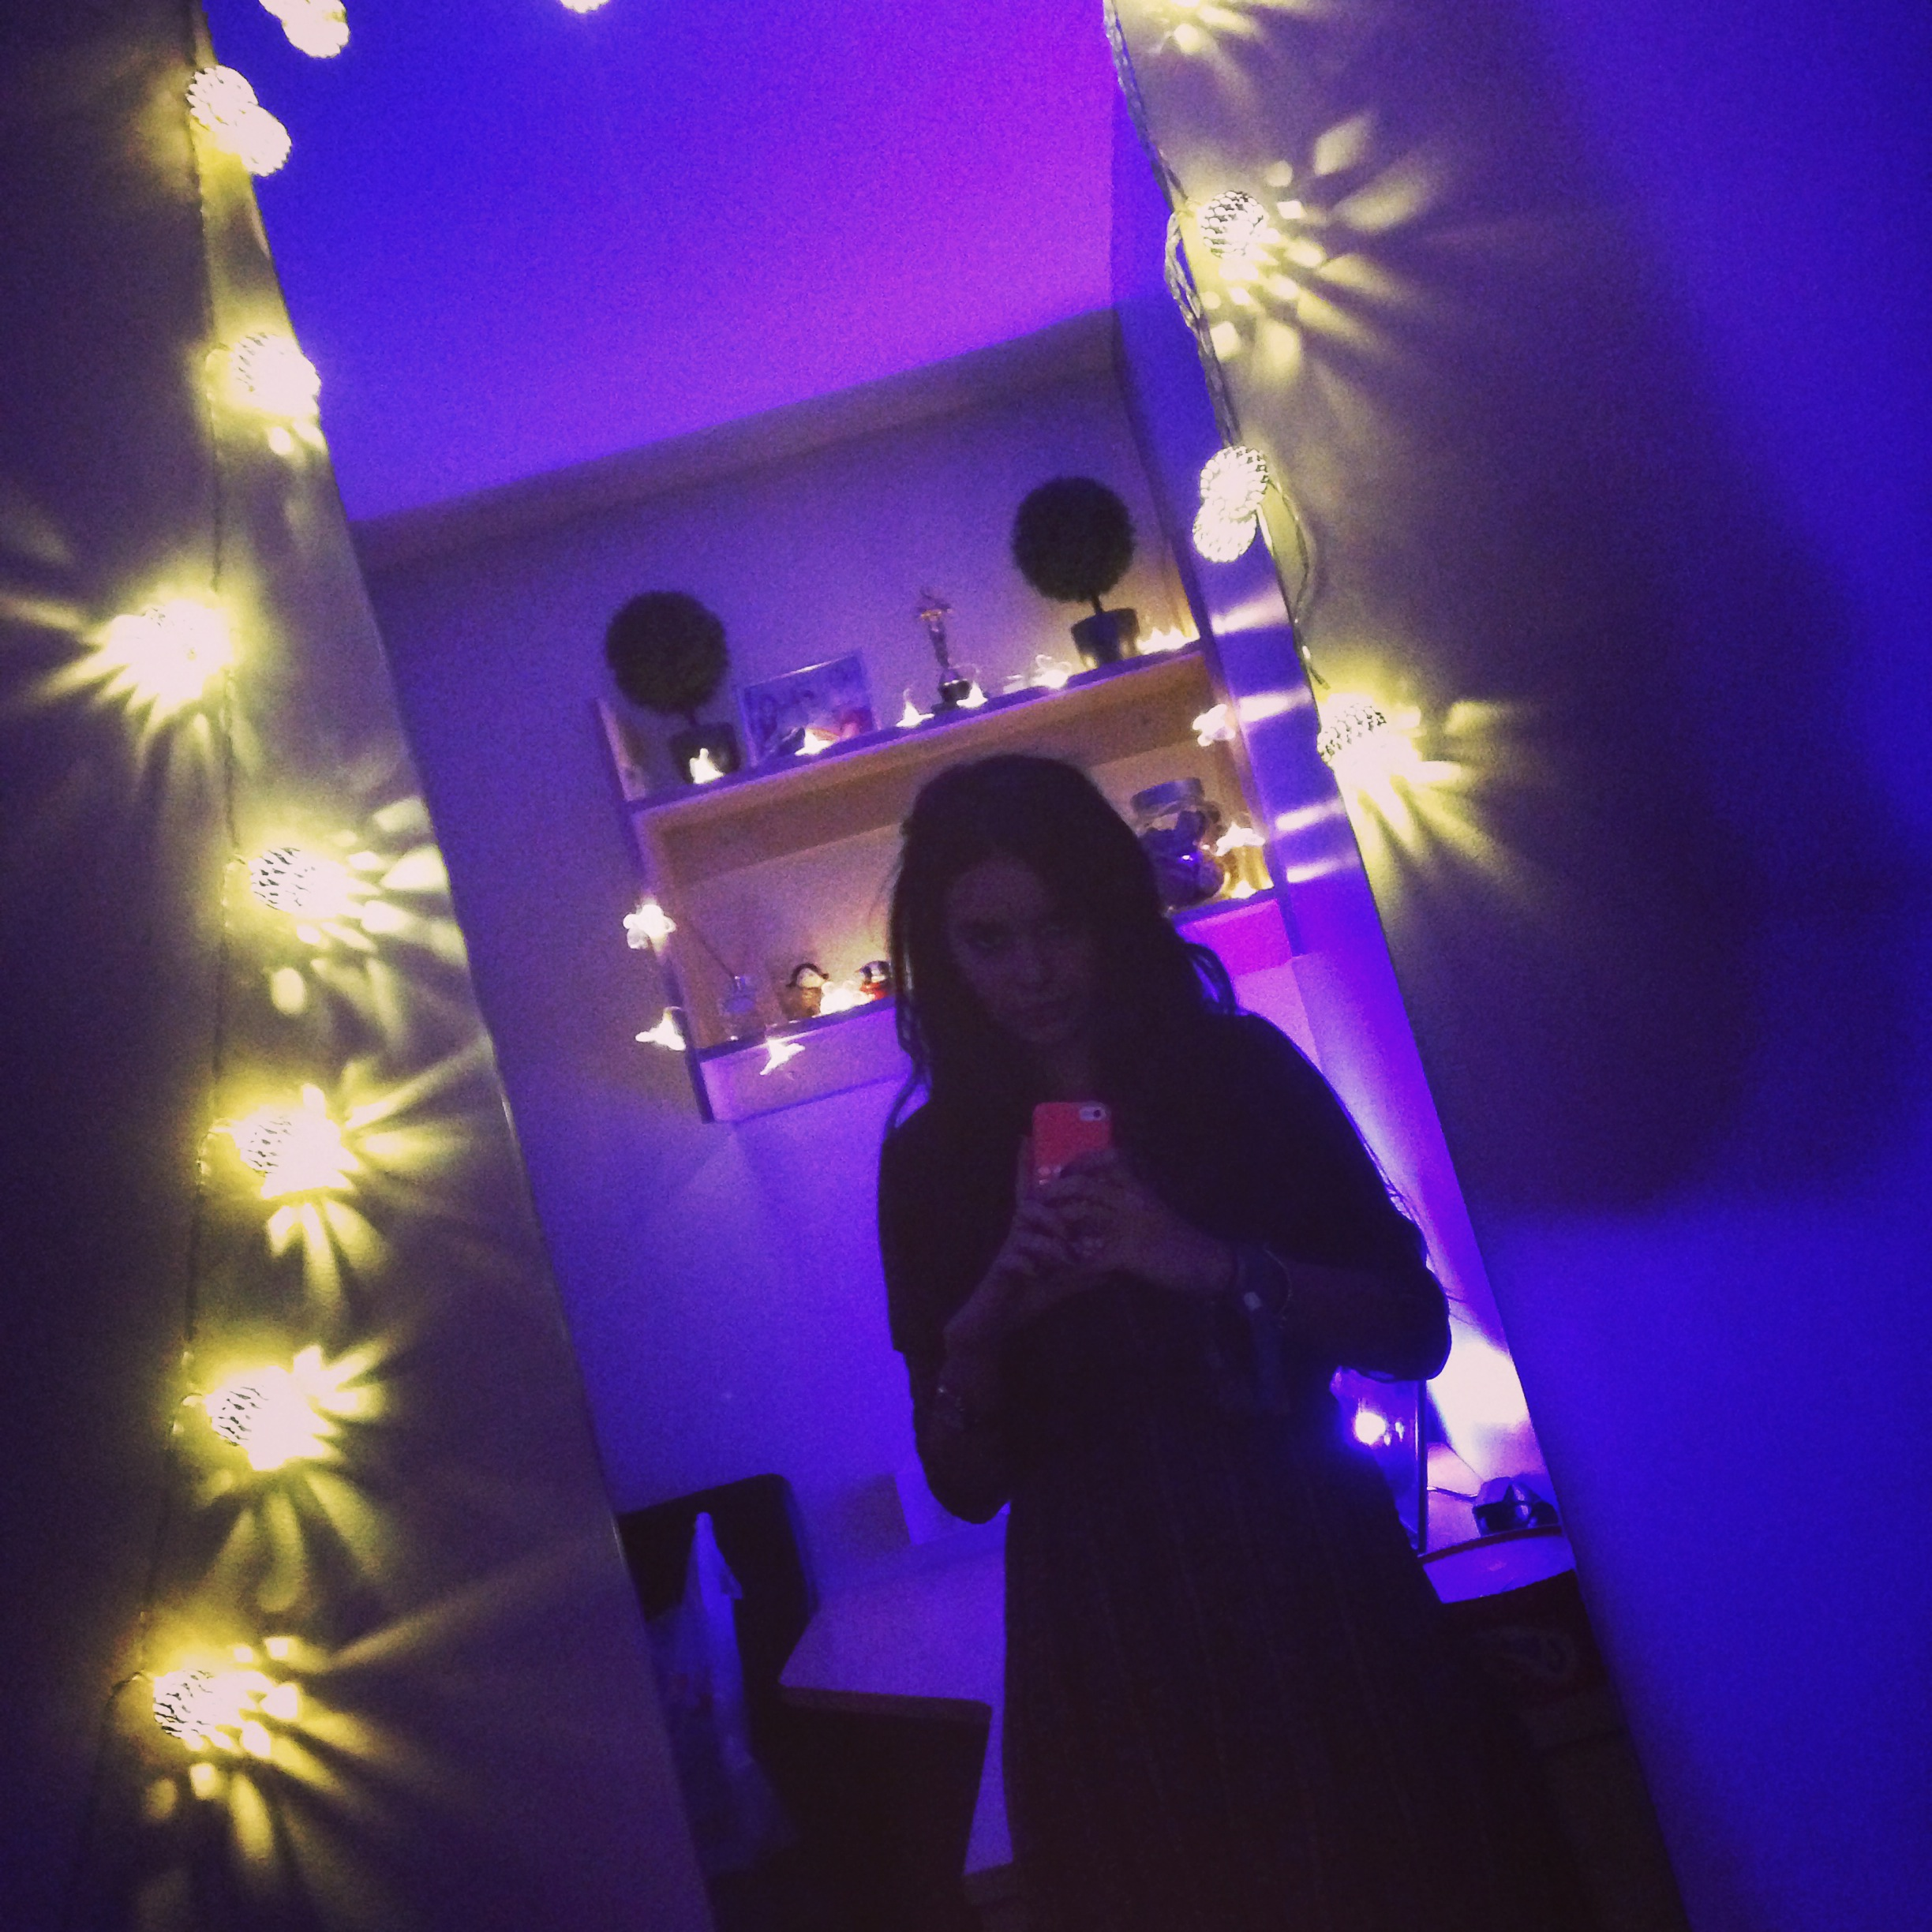 First night in my new flat, some may say I went OTT with the fairy lights